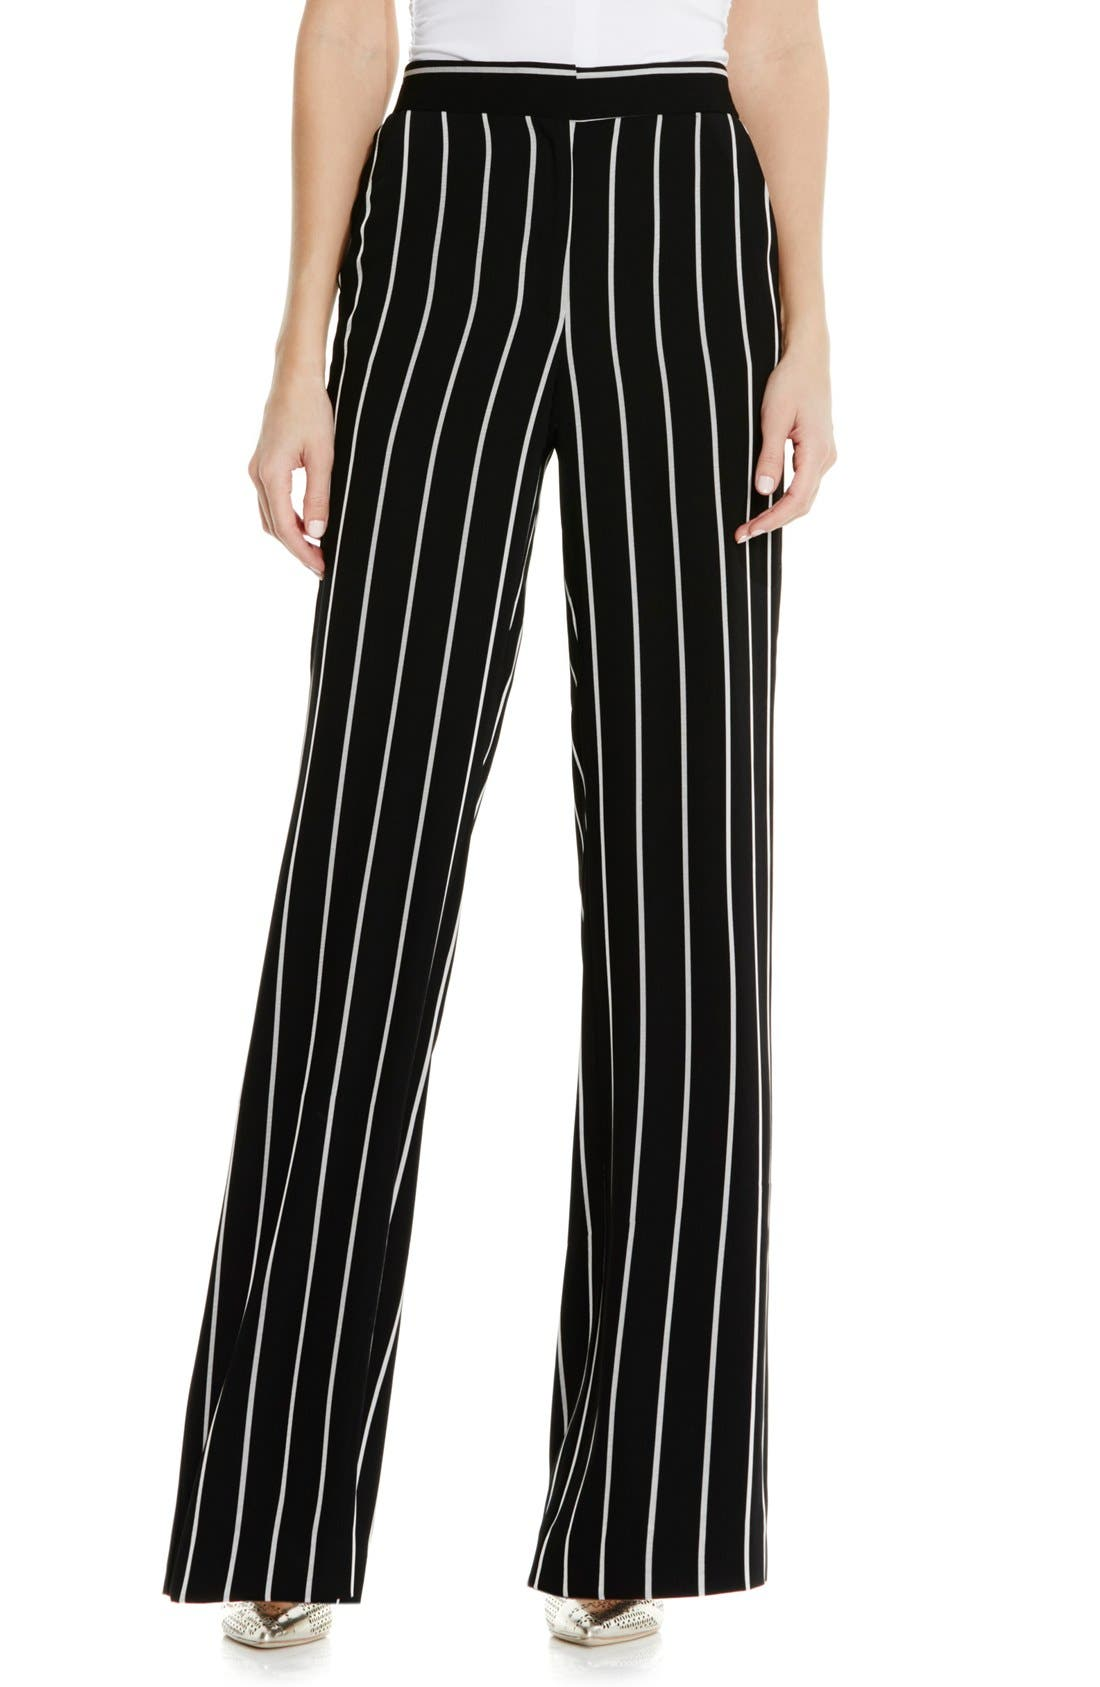 Alternate Image 1 Selected - Vince Camuto Stripe Wide Leg Pants